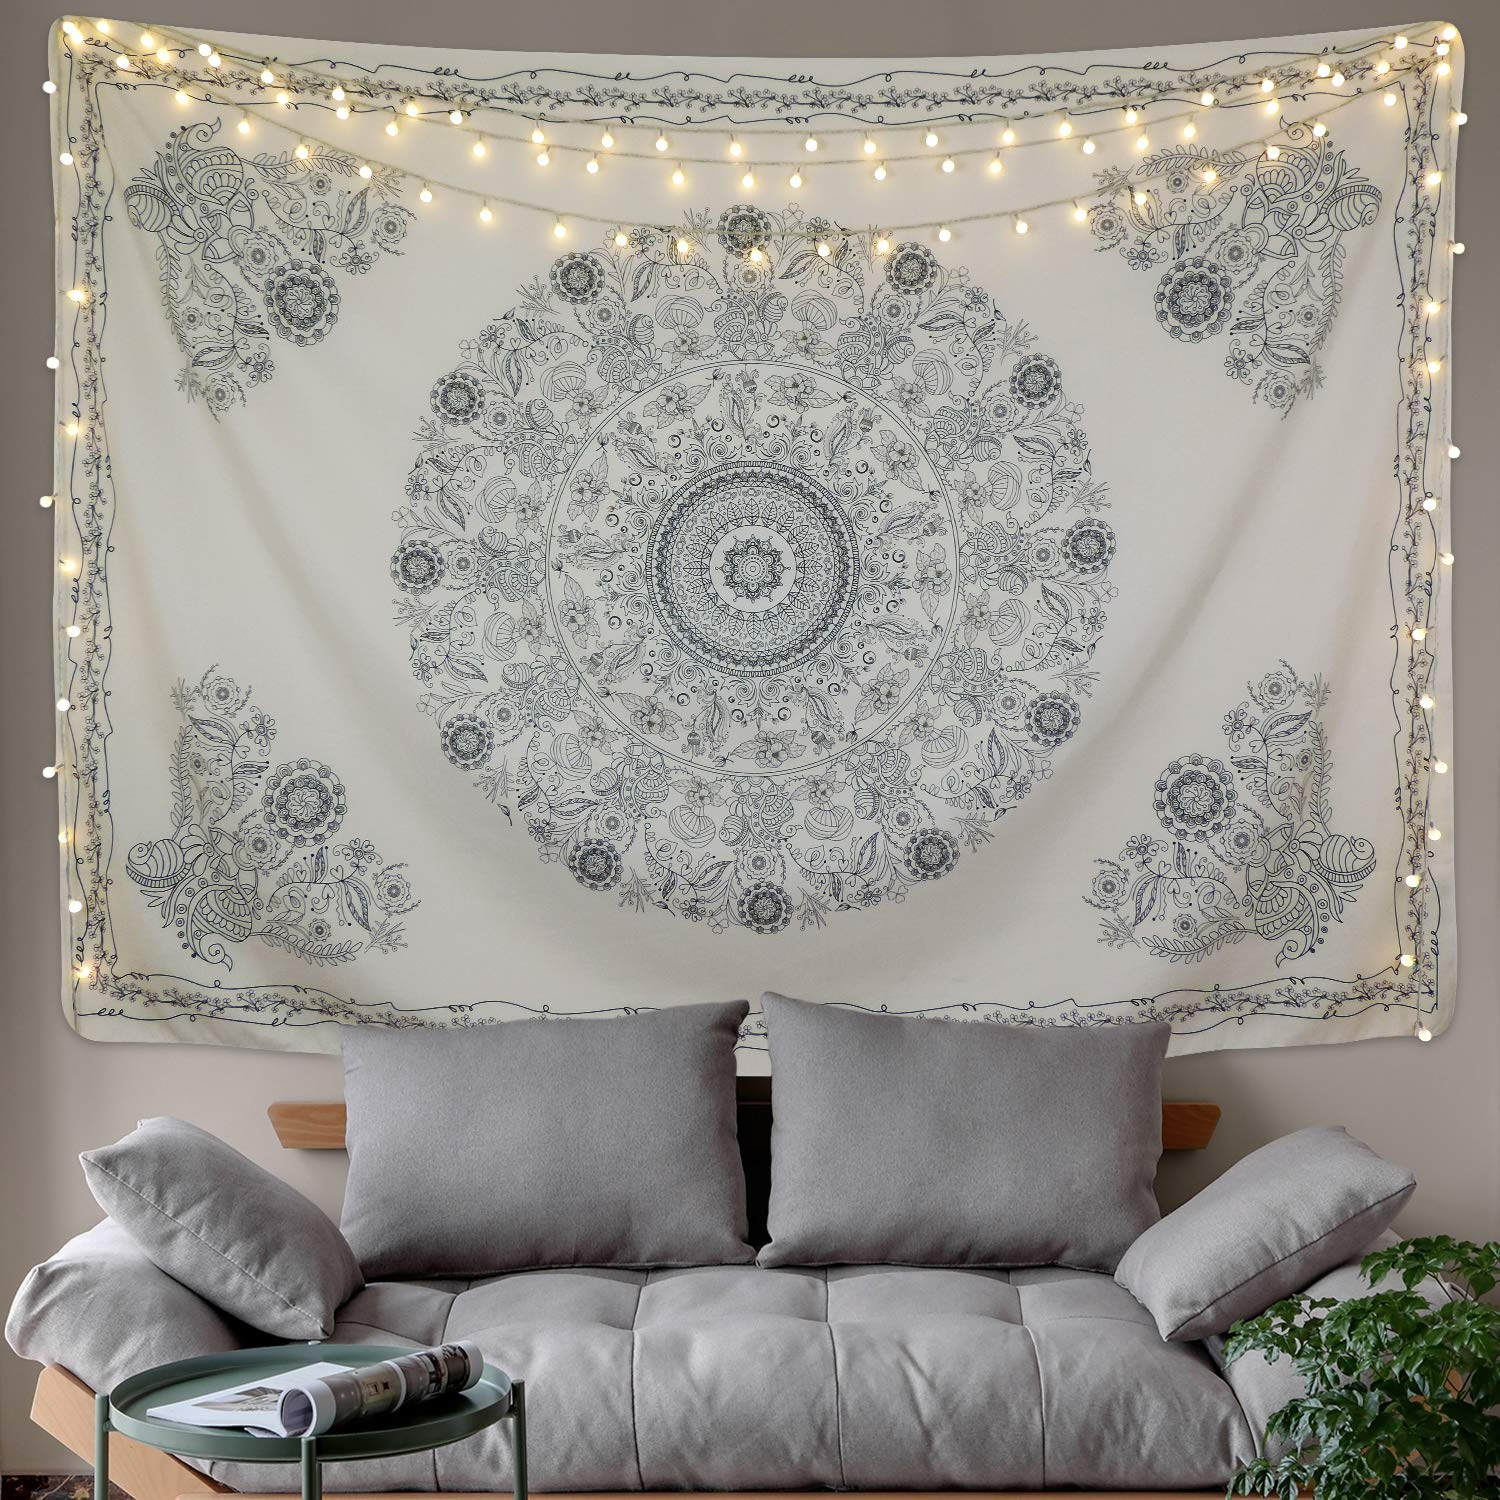 BLEUM CADE Tapestry Mandala Hippie Bohemian Tapestry Wall Hanging Medallion Floral Art Tapestry Wall Hanging Indian Dorm Decor for  Room